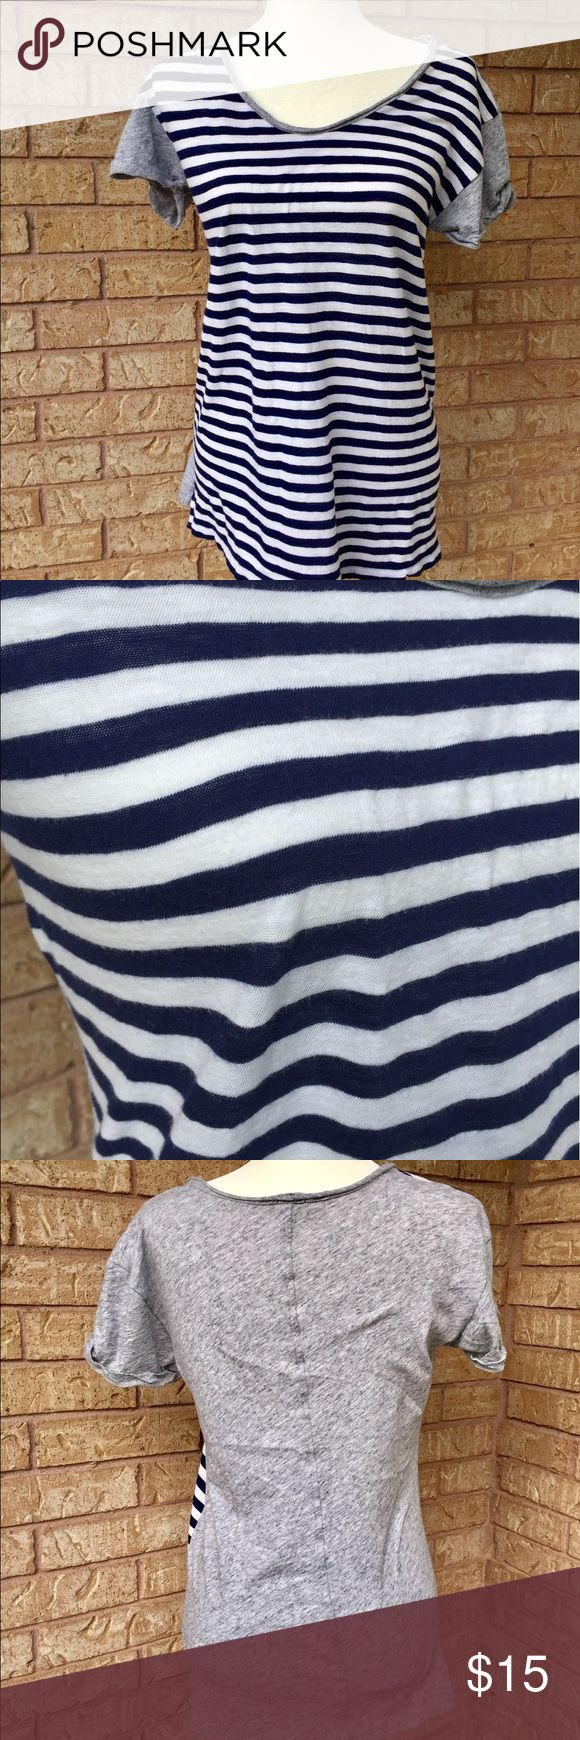 J. Crew Striped Top Blue and white striped short sleeve top from J. Crew in a size small. Grey on the back. Worn only a couple times. Great condition, no flaws! 100% cotton. Great to wear with blue or white jeans! J. Crew Tops Tees - Short Sleeve